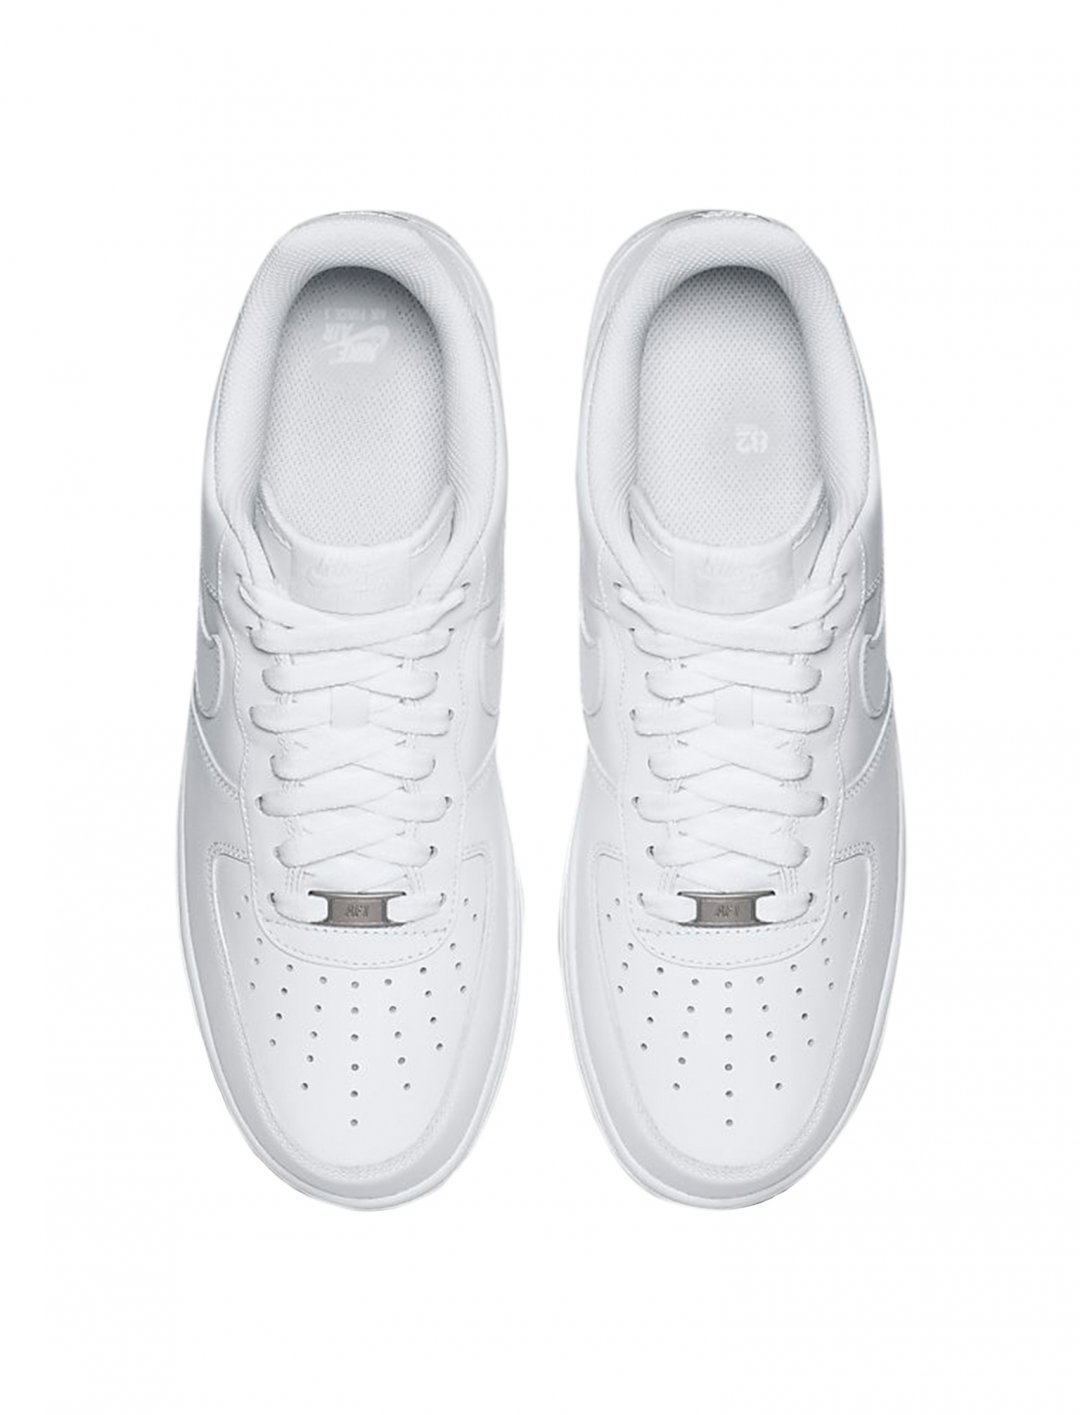 "Lethal Bizzle's Nike Trainers {""id"":12,""product_section_id"":1,""name"":""Shoes"",""order"":12} Nike"